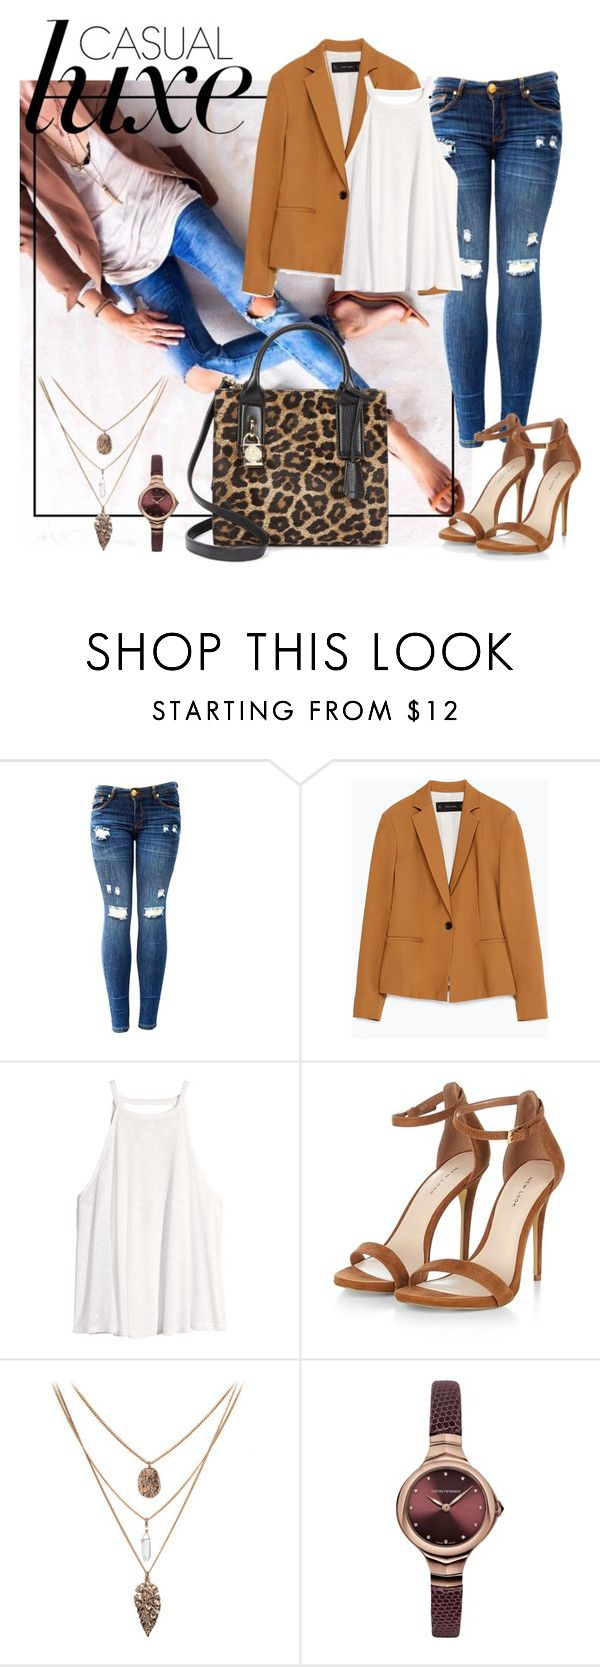 """""""Get inspired: Casual Luxe"""" by vinagrace ❤ liked on Polyvore featuring Zara, H&M, Emporio Armani and Michael Kors"""